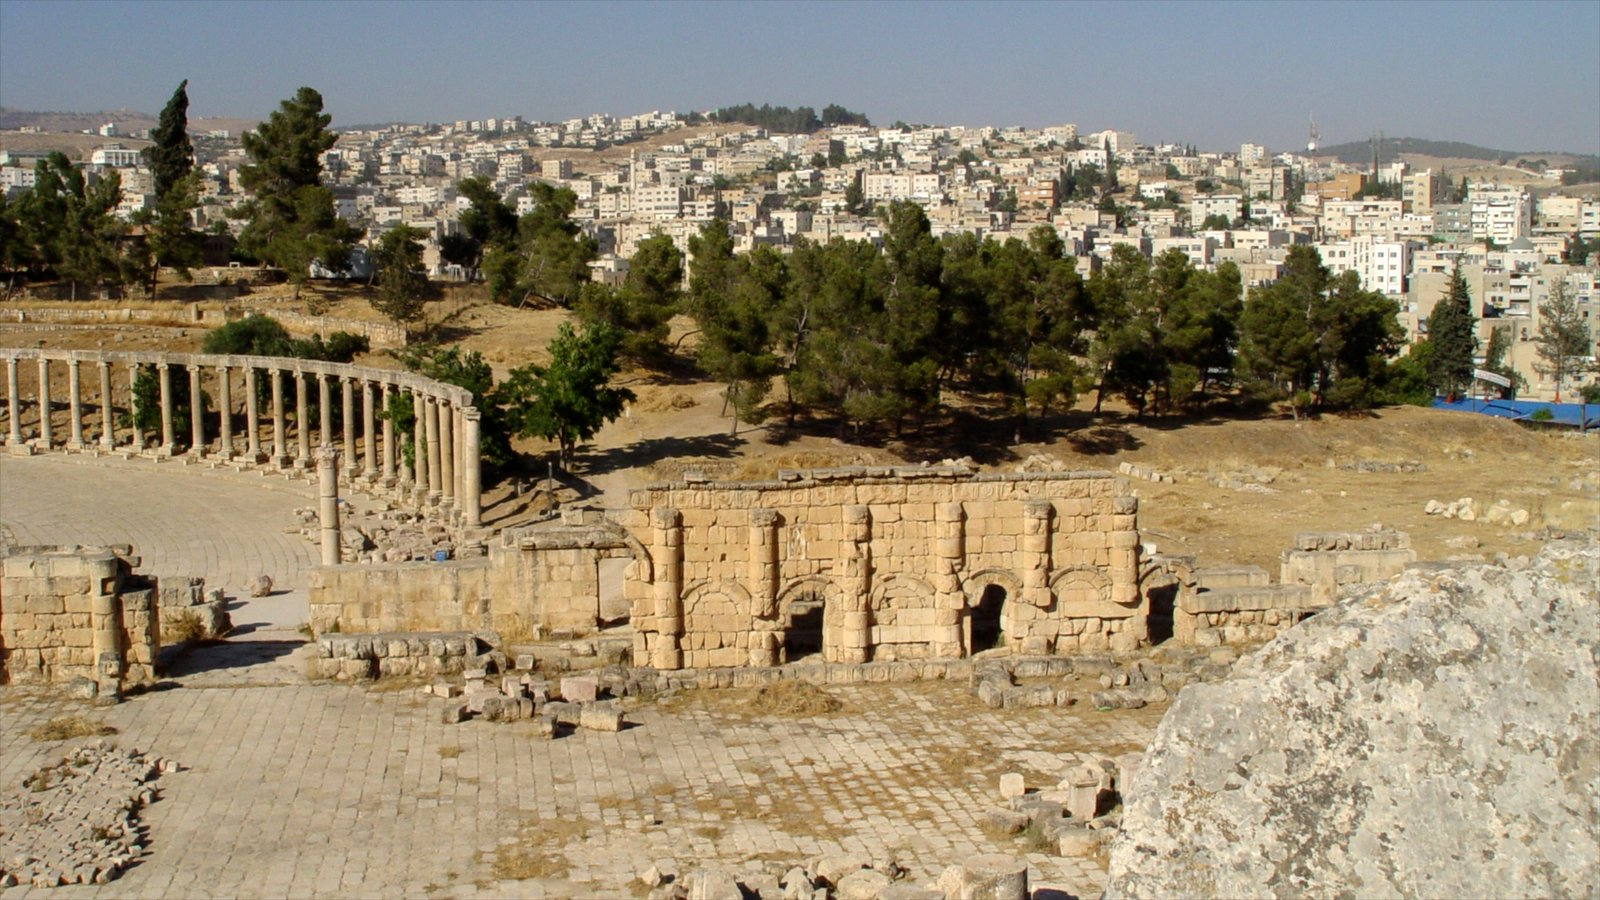 Jerash featuring heritage architecture, building ruins and a city